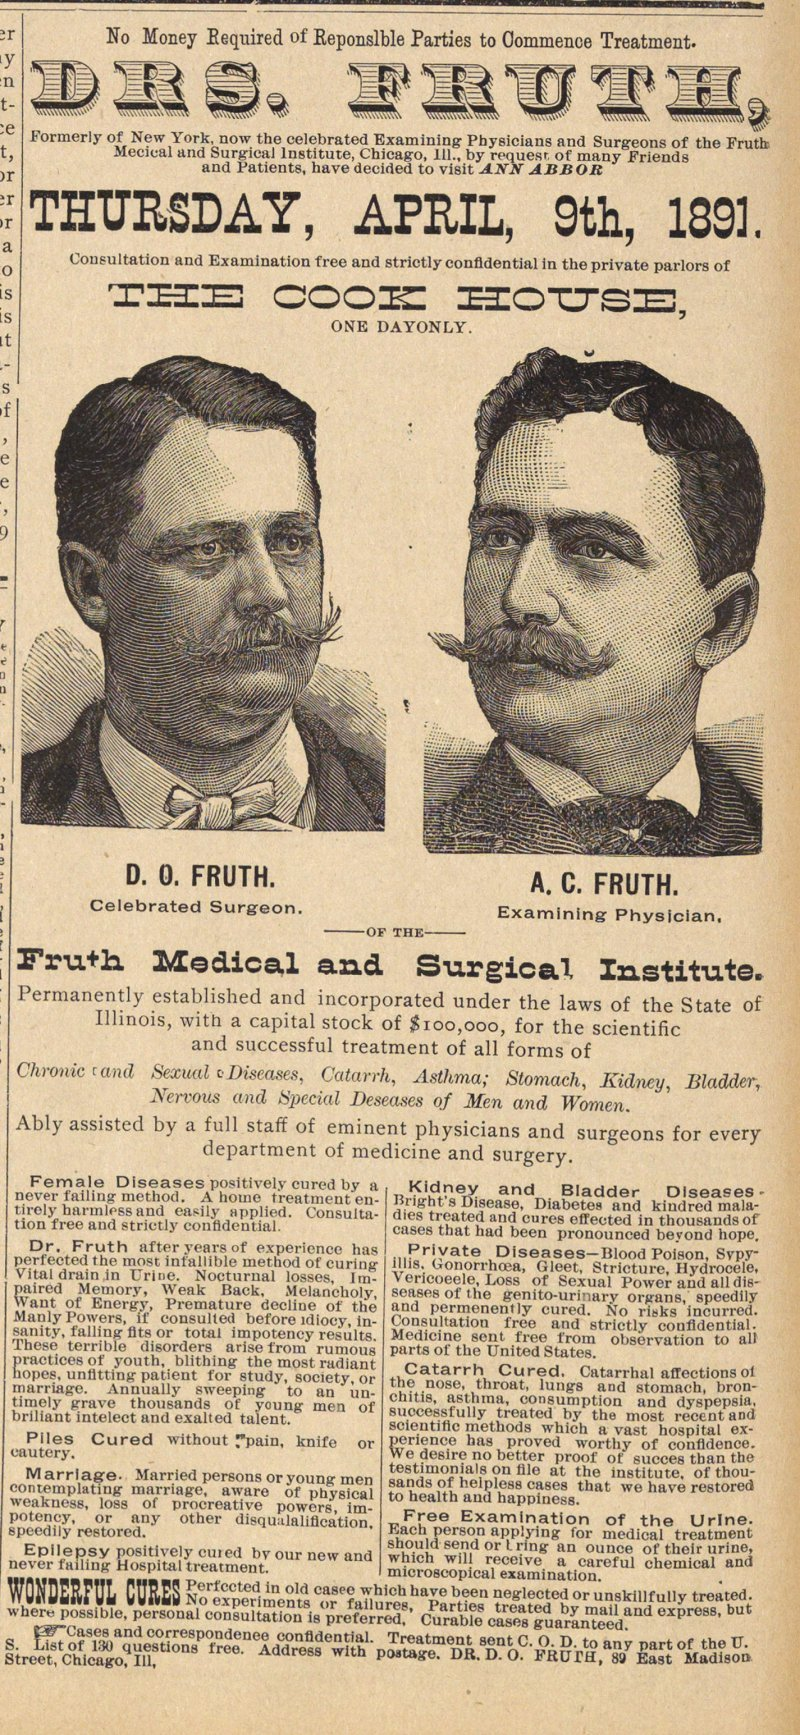 Fruth Medical And Surgical Institute image